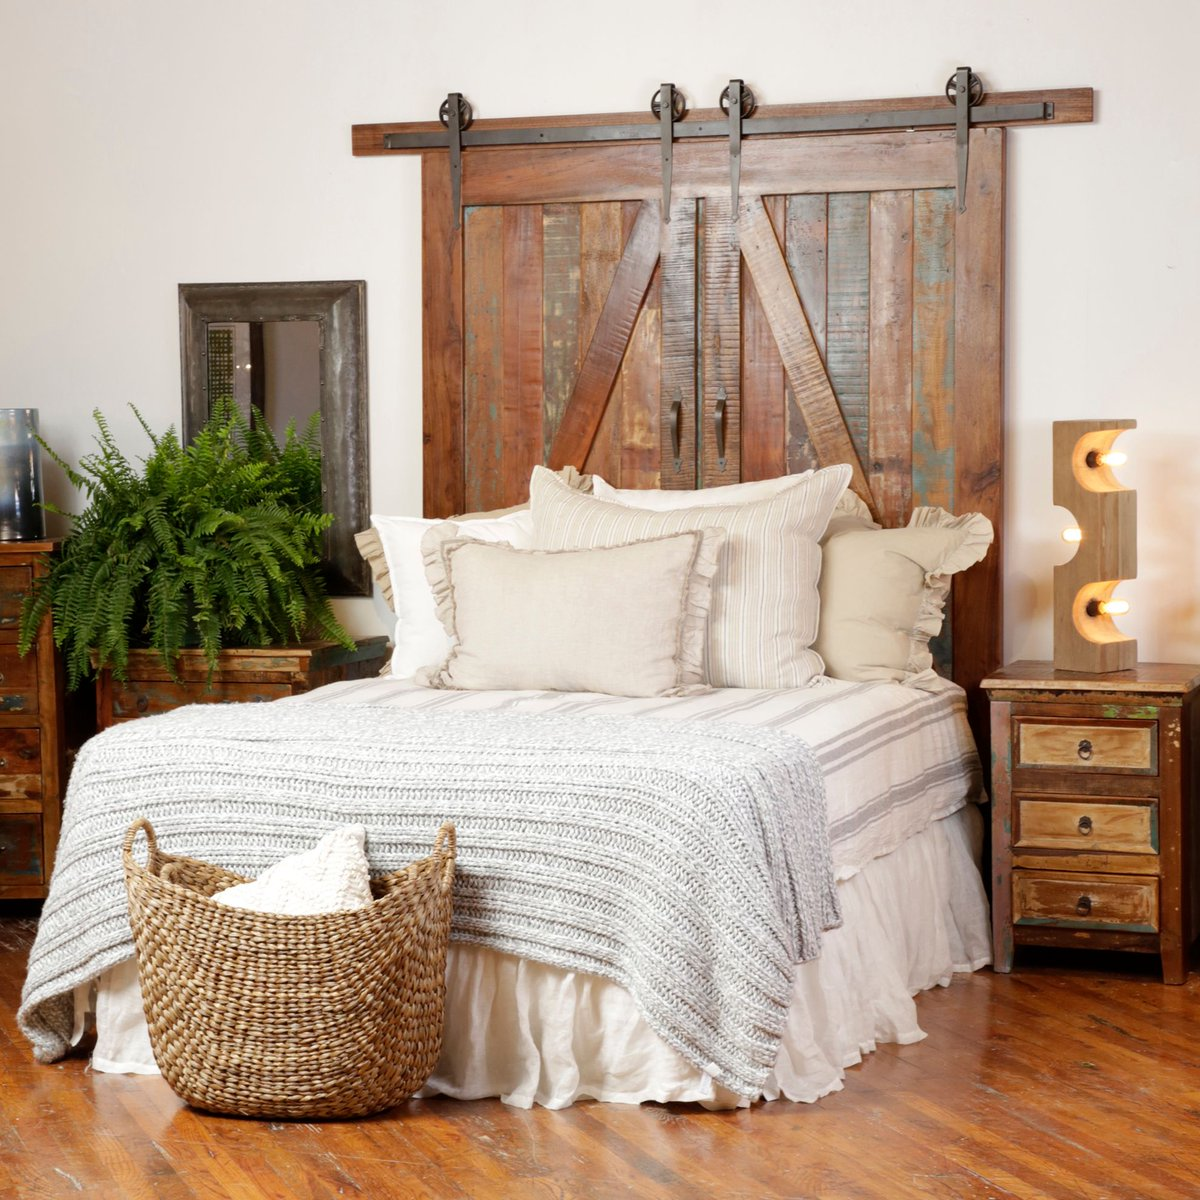 Dovetail Furniture On Twitter Look At This Beautiful Barn Door Headboard One Of The Many Dovetail Pieces Displayed In Our Recent High Point Showroom This Manning Headboard Features Reclaimed Mixed Wood